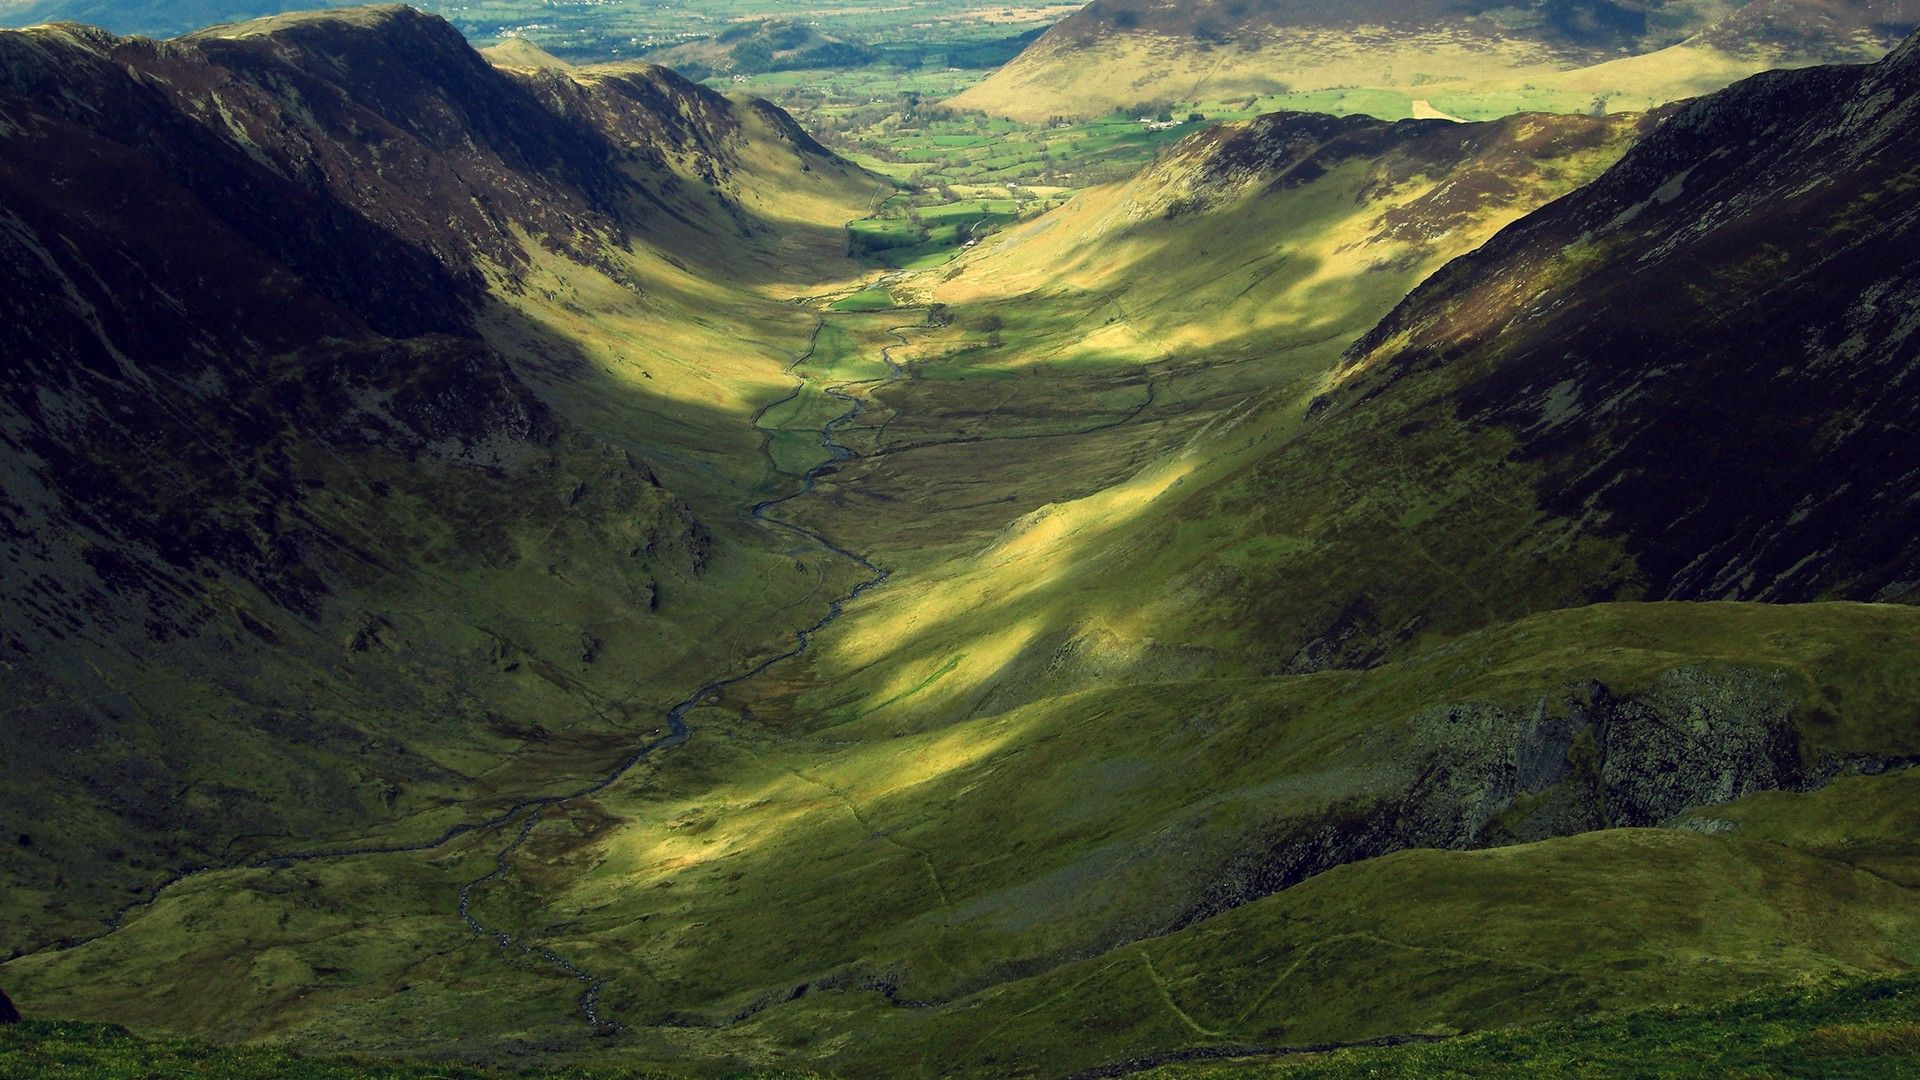 Shadows and light in the valley